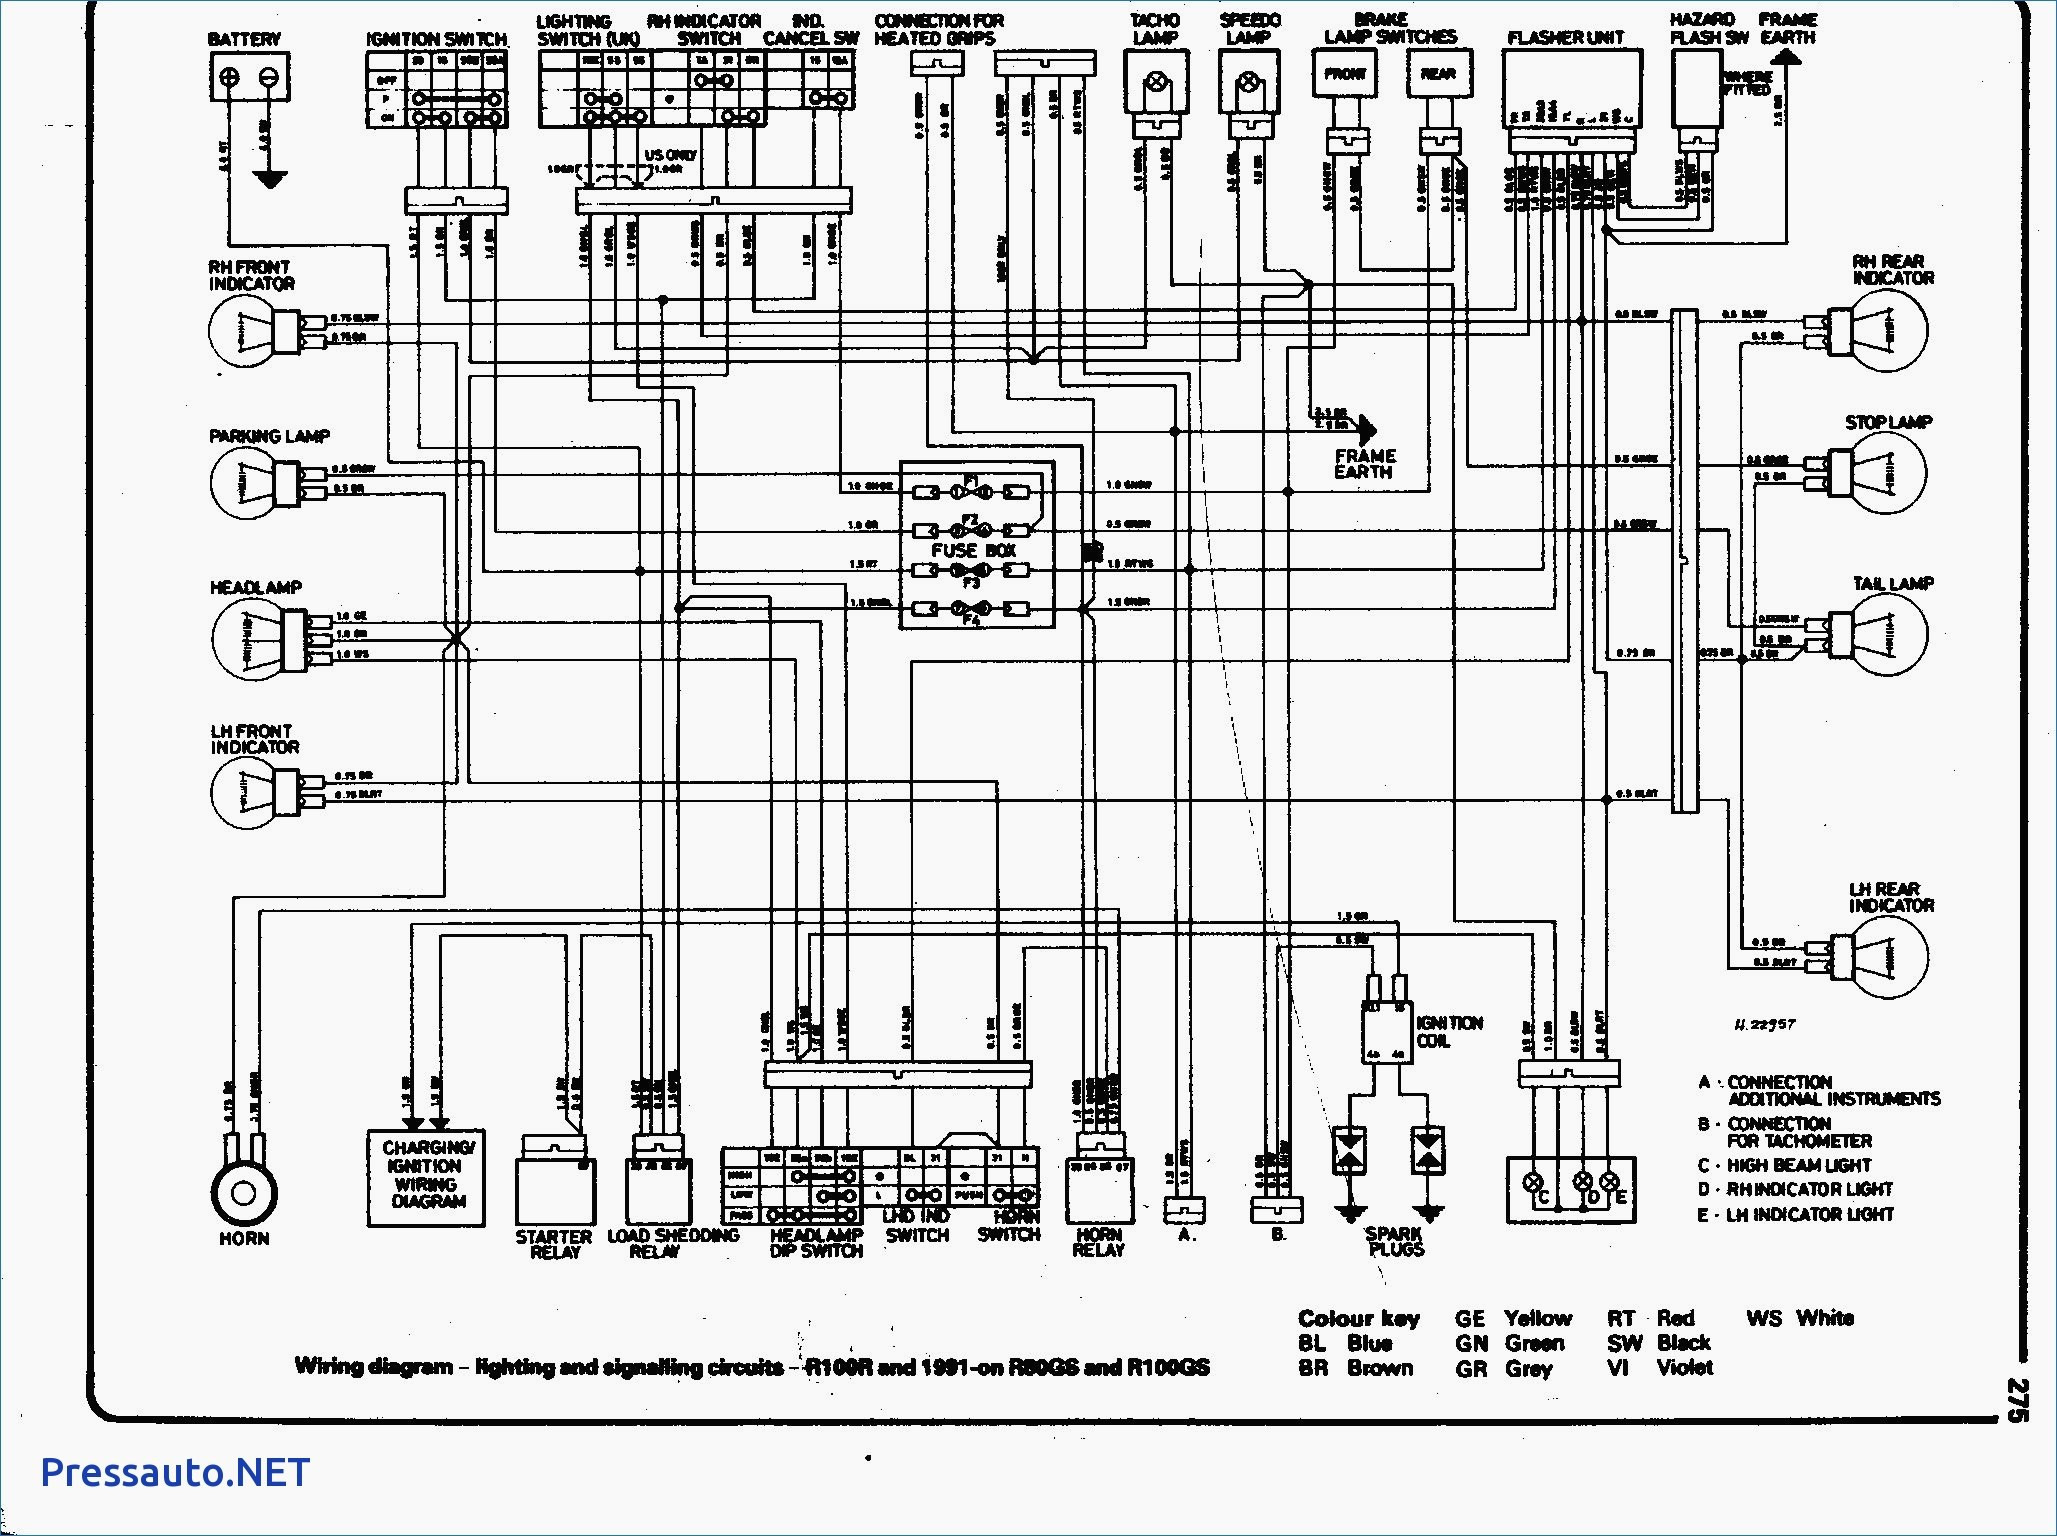 Fabulous Western Snow Plow Wiring Diagram Wiring Diagram For Western Snow Wiring Cloud Licukaidewilluminateatxorg